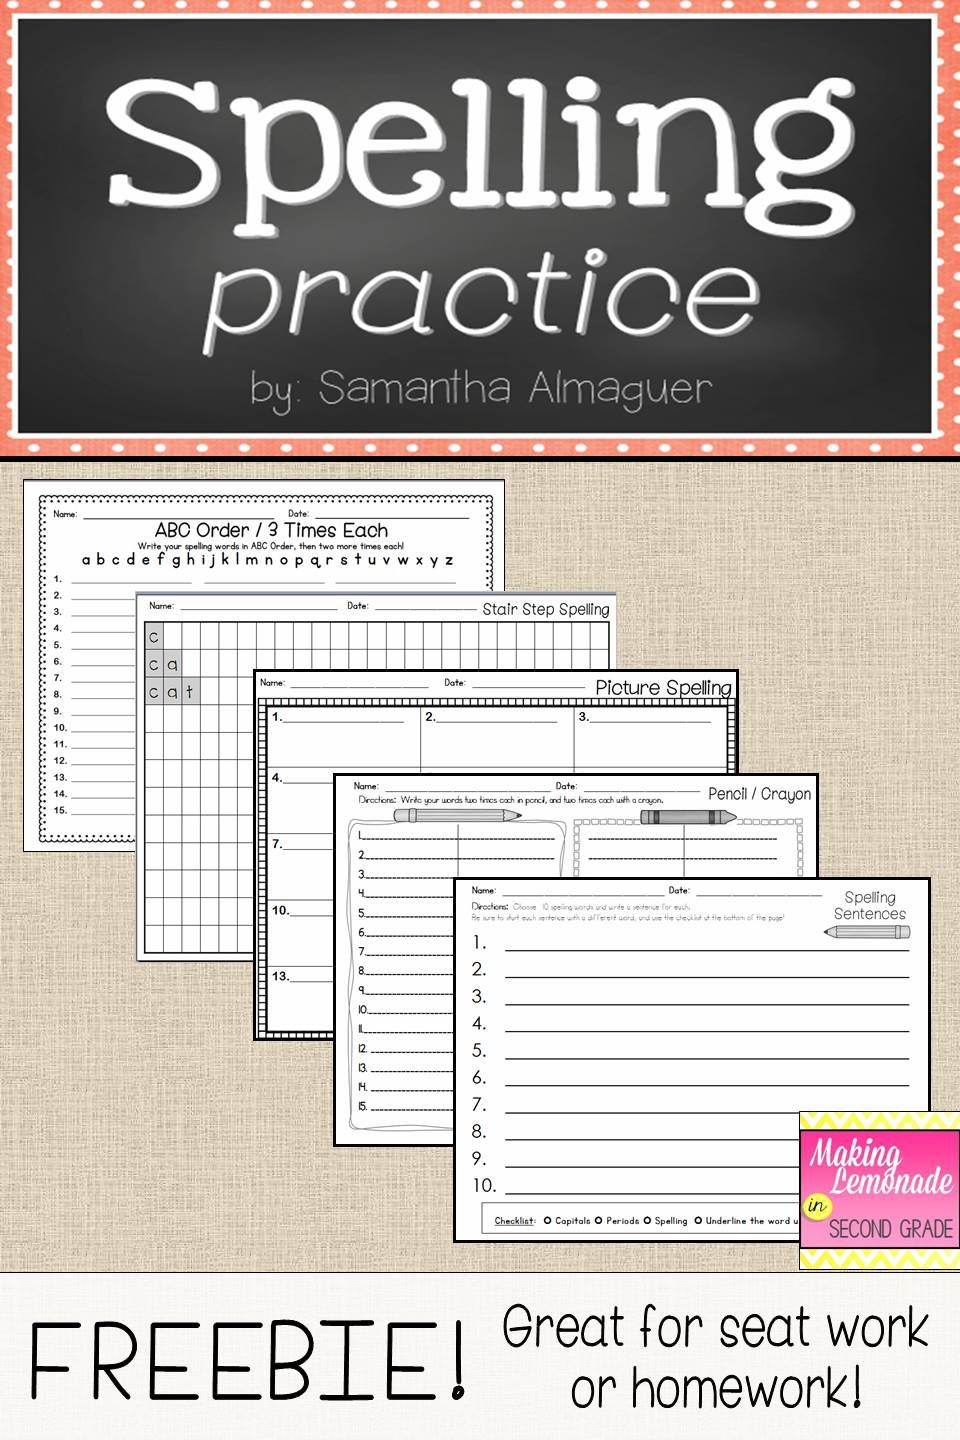 best 25 spelling worksheets ideas on pinterest spelling word activities spelling practice. Black Bedroom Furniture Sets. Home Design Ideas